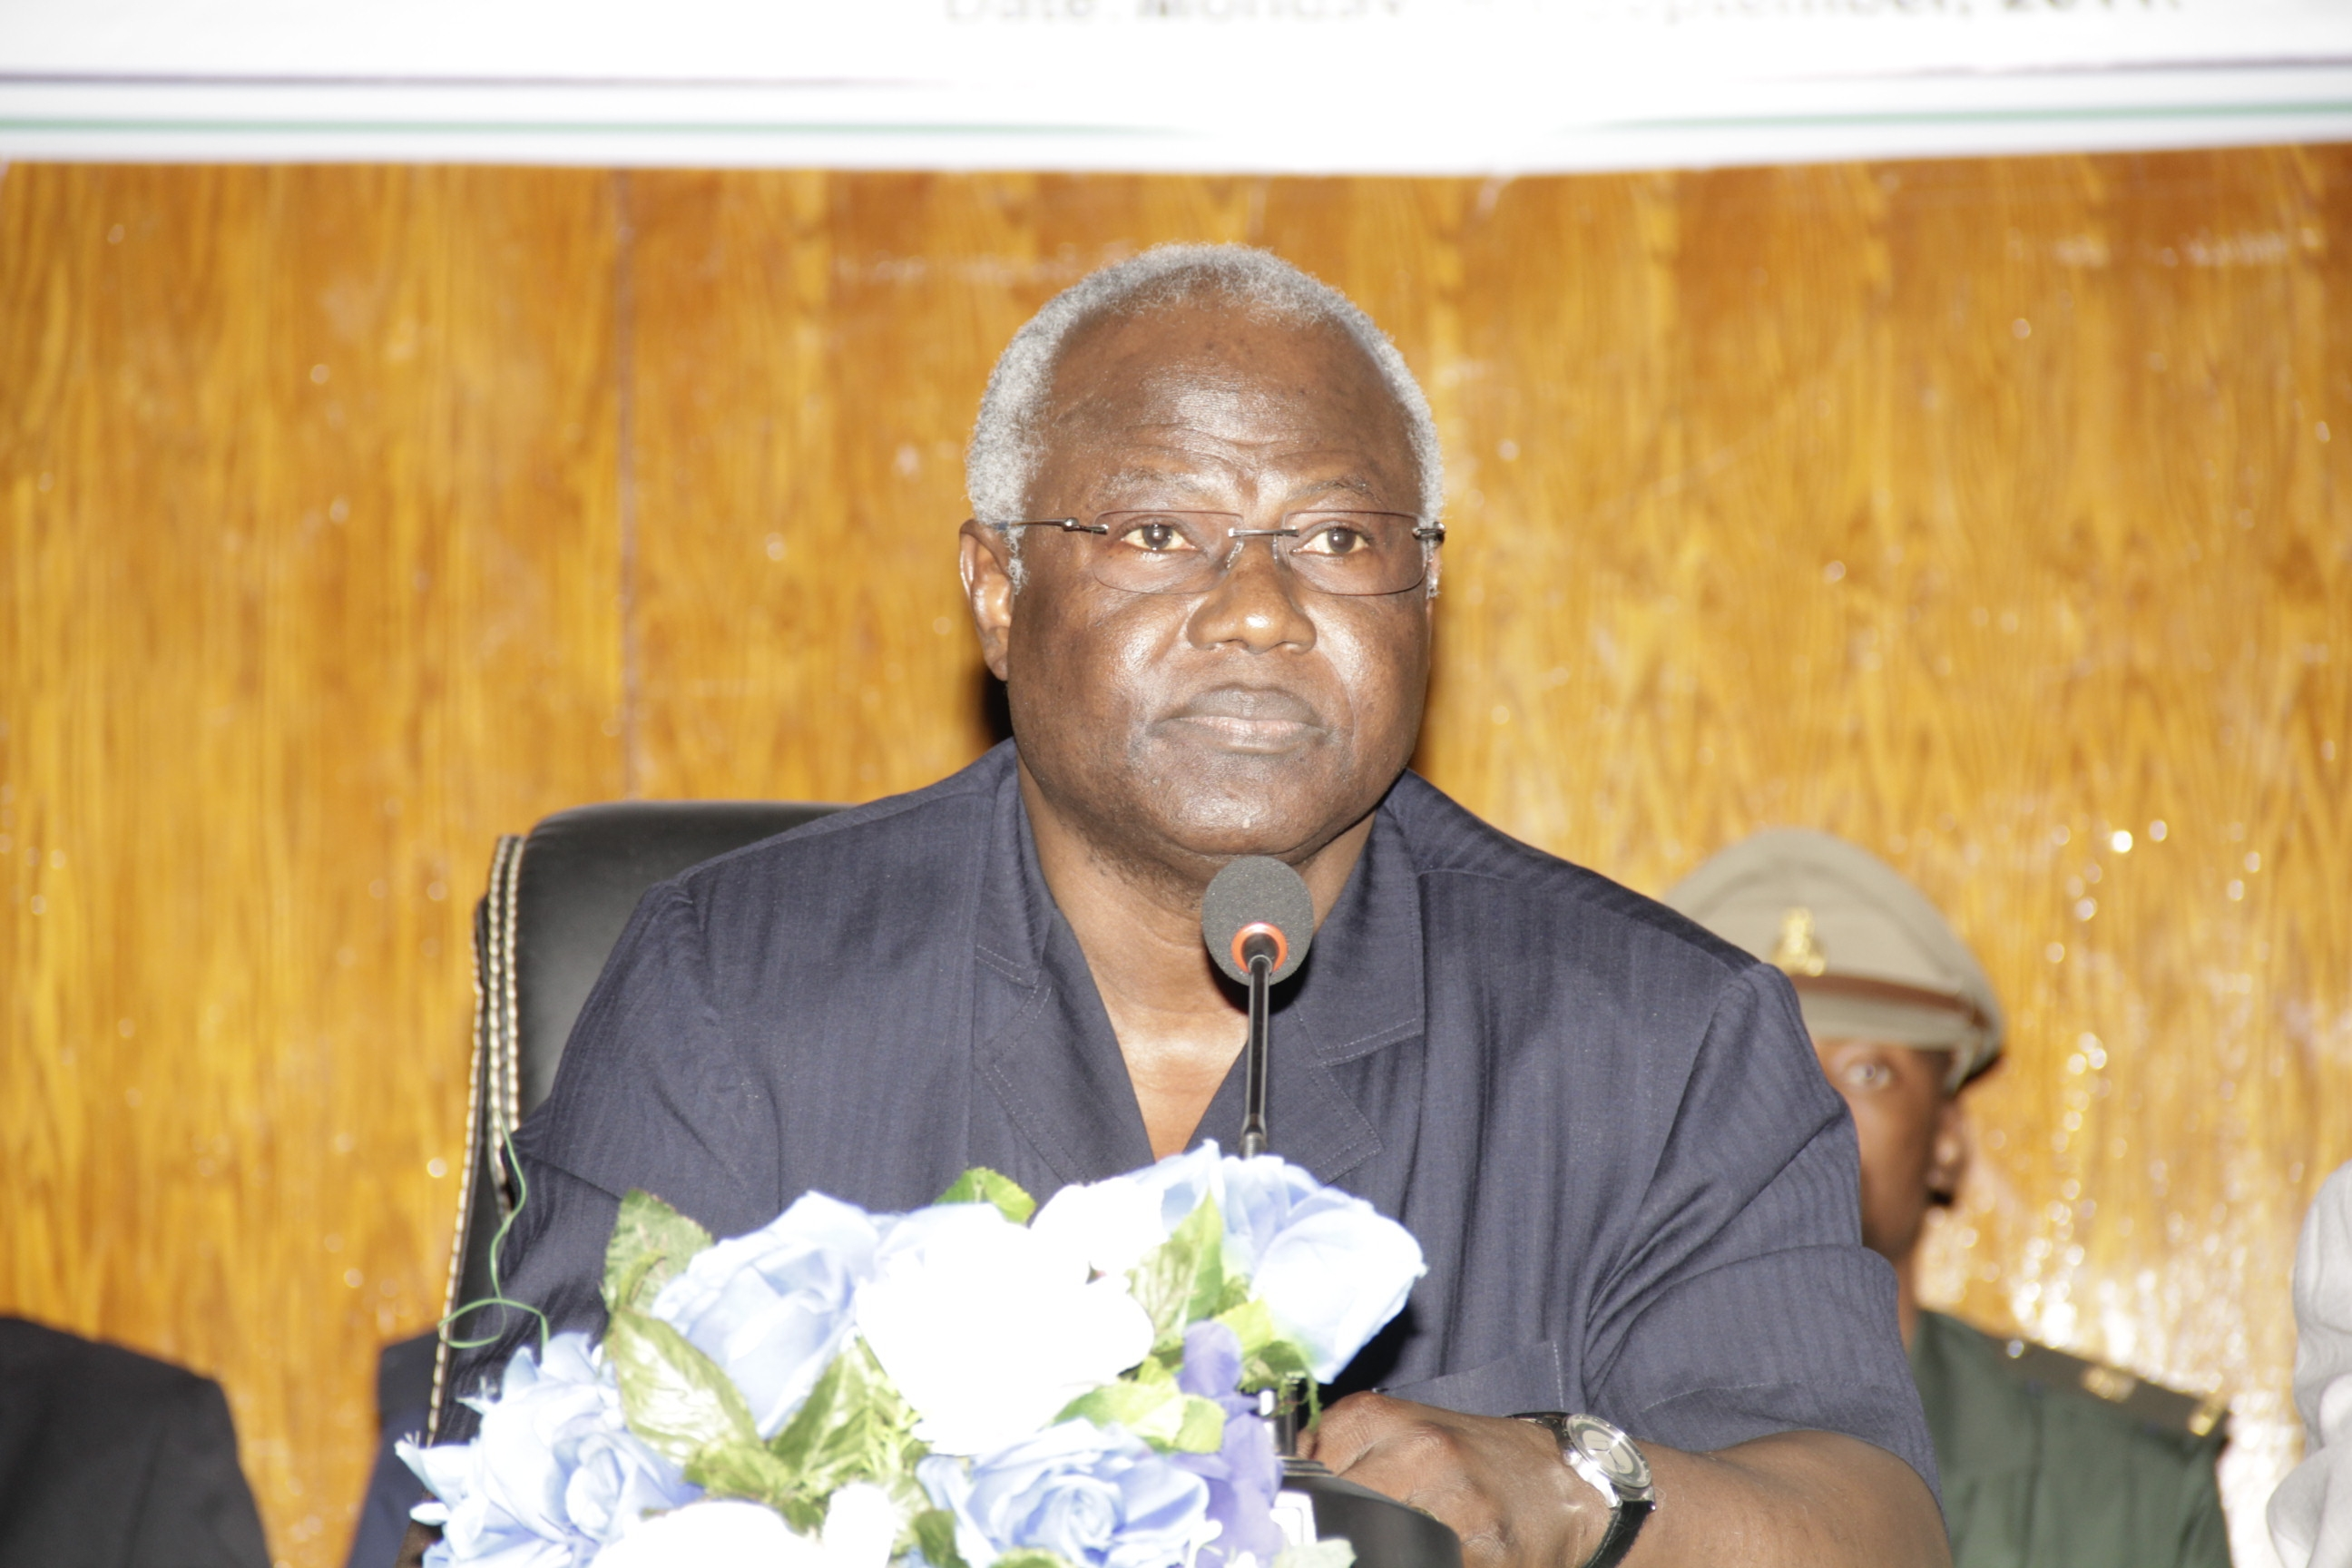 PRESEIDENT KOROMA SPEAKS ABOUT VIOLENCE SEPT 2011